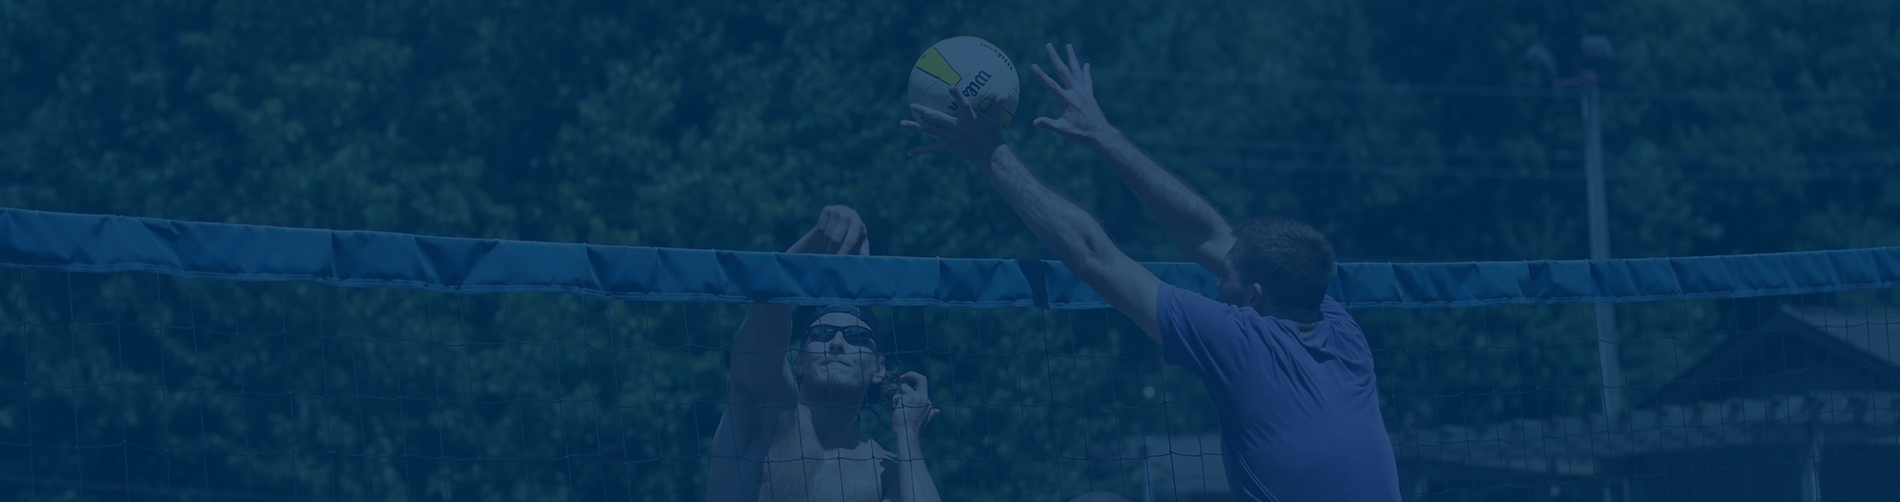 Sand Volleyball | The Sands, Des Moines